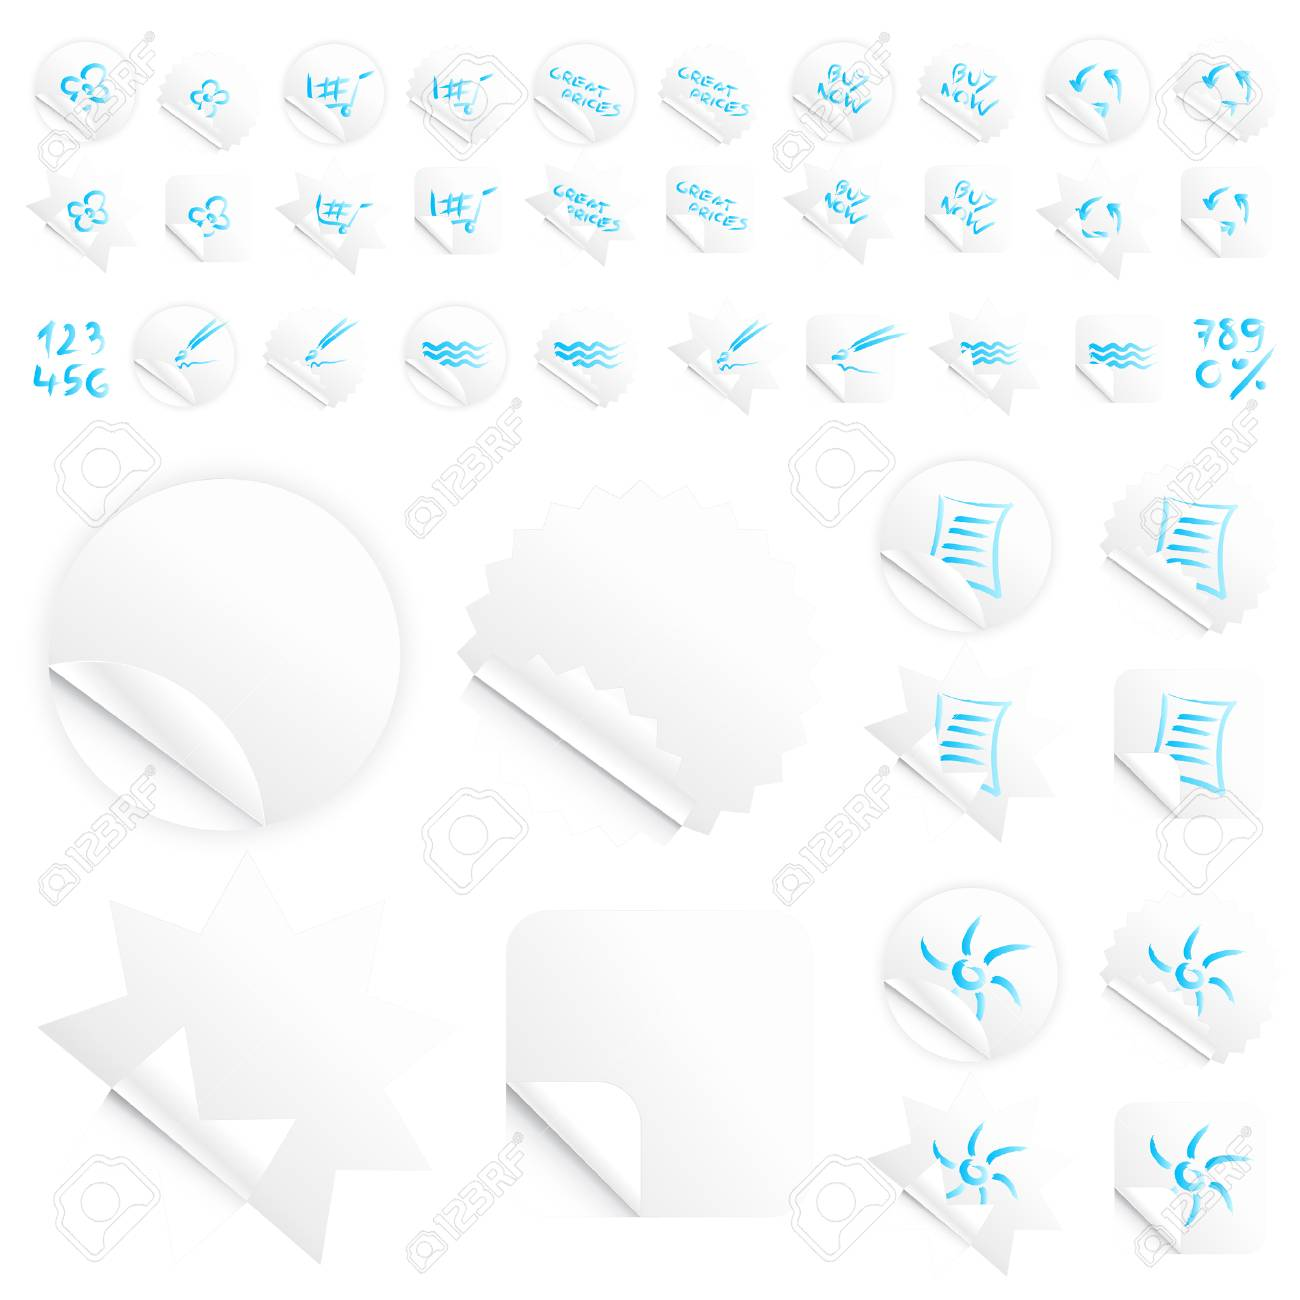 Vector illustrations of four different modern glossy shiny stickers or tags. Various custom themes. Blue writing. Stock Vector - 3391775